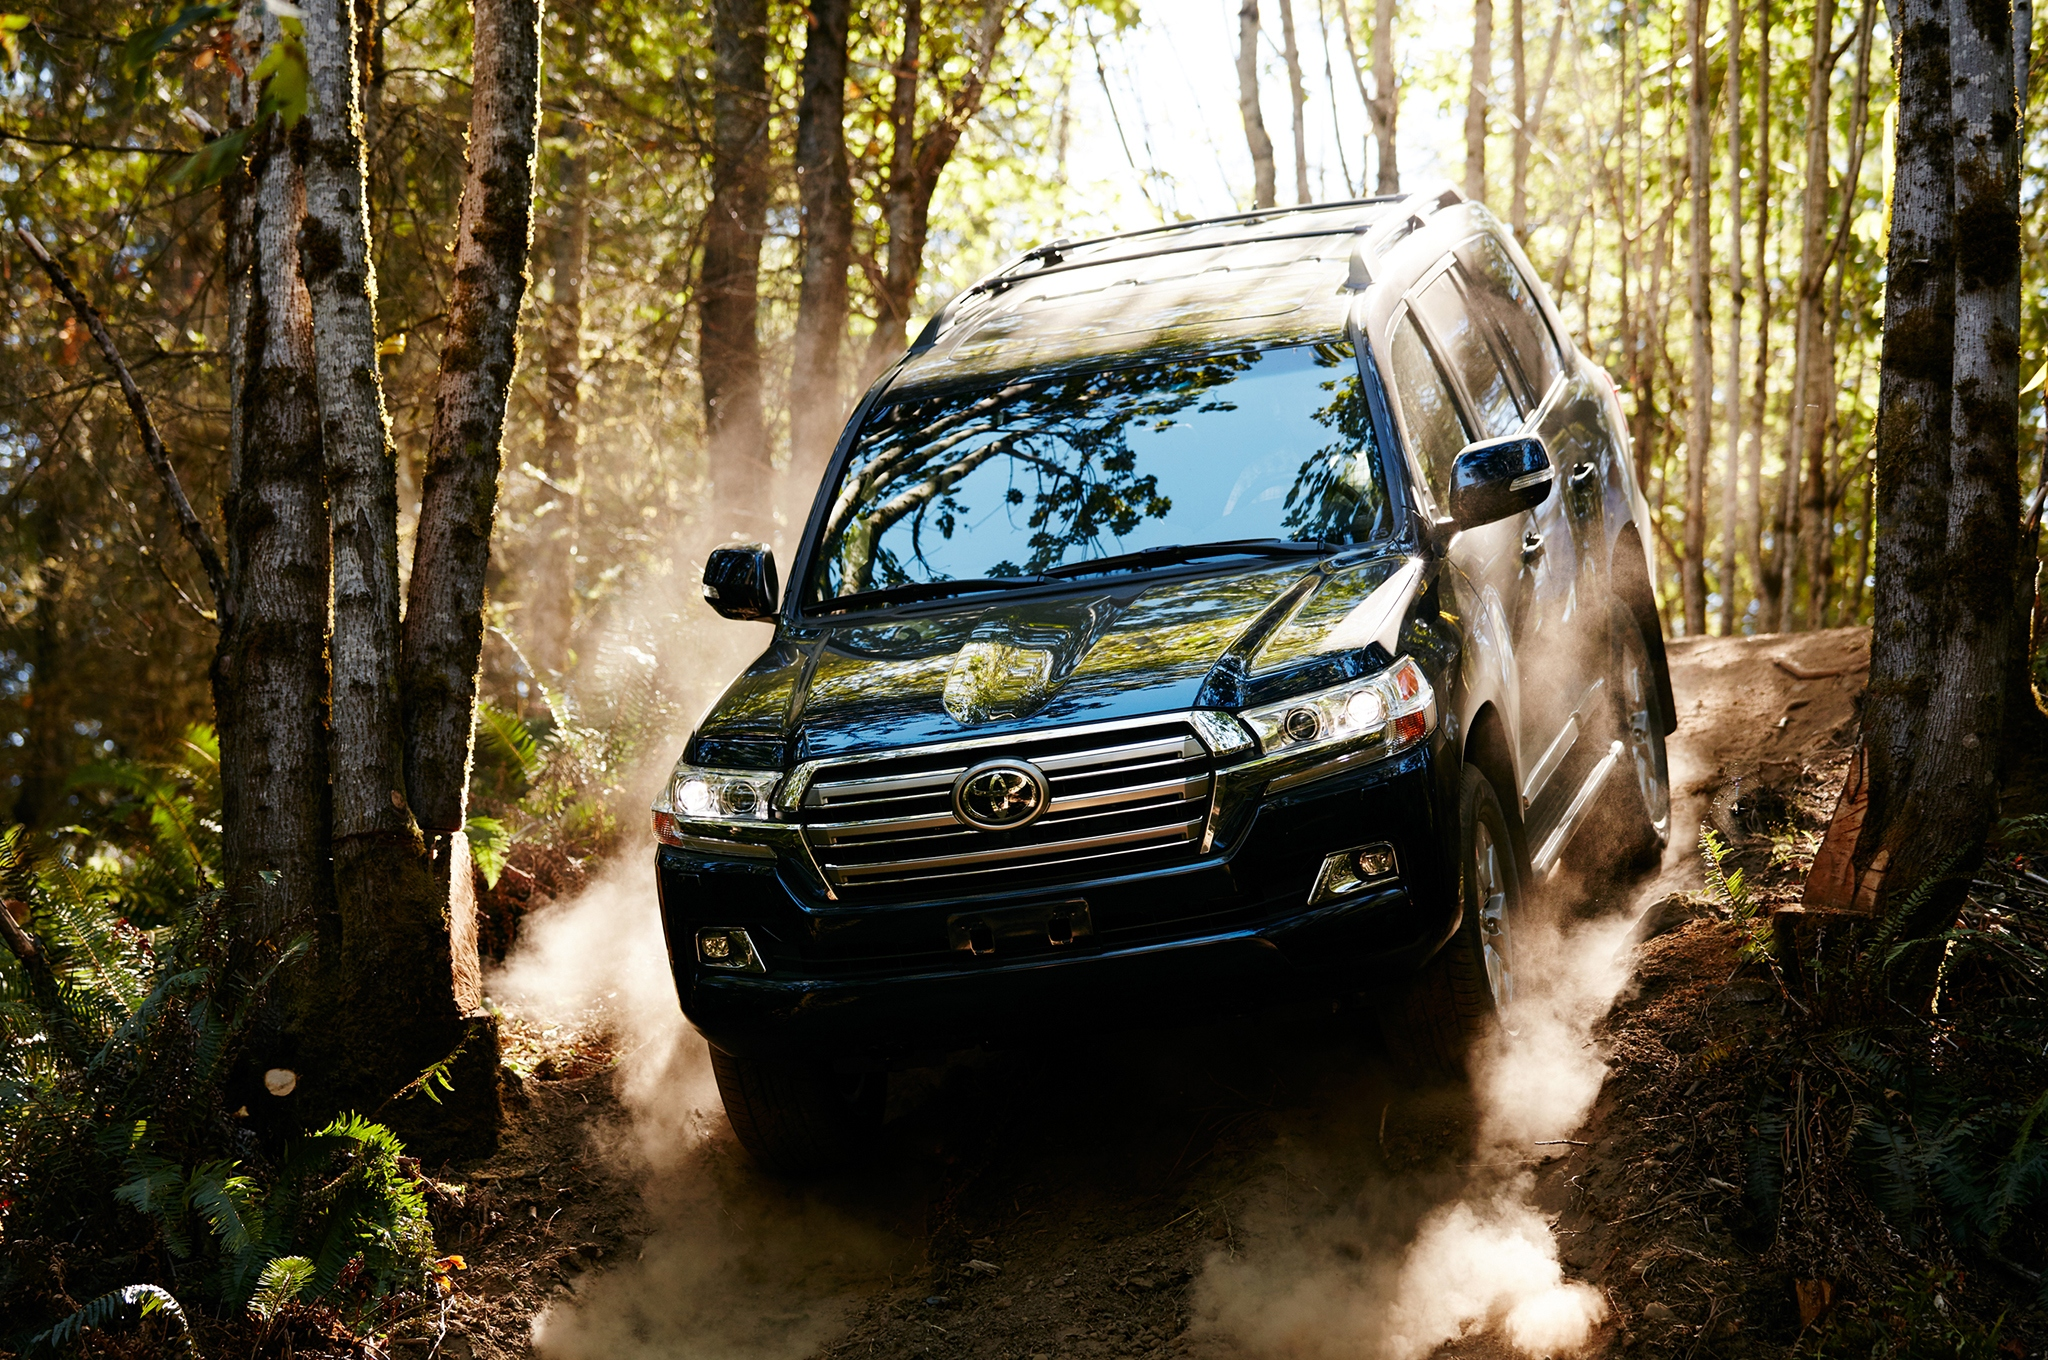 2016-toyota-land-cruiser-front-off-road-in-motion